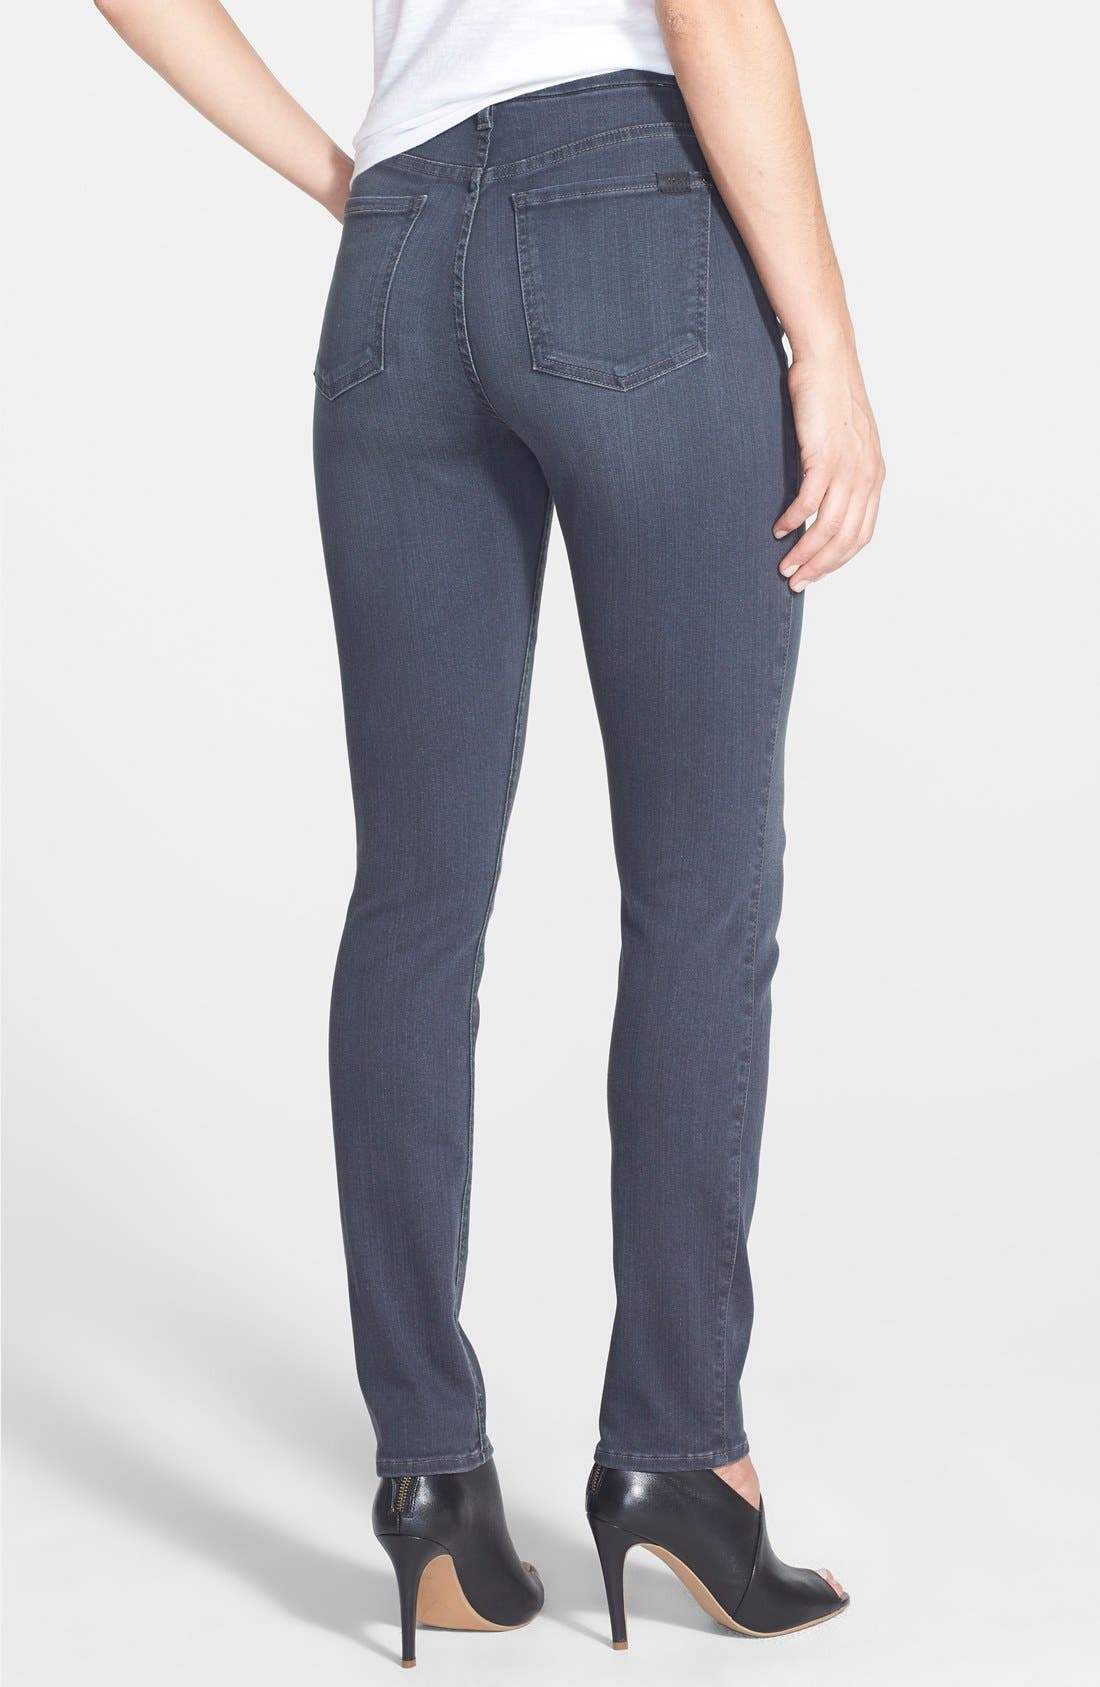 Alternate Image 2  - Jen7 Stretch Skinny Jeans (Clean Grey)